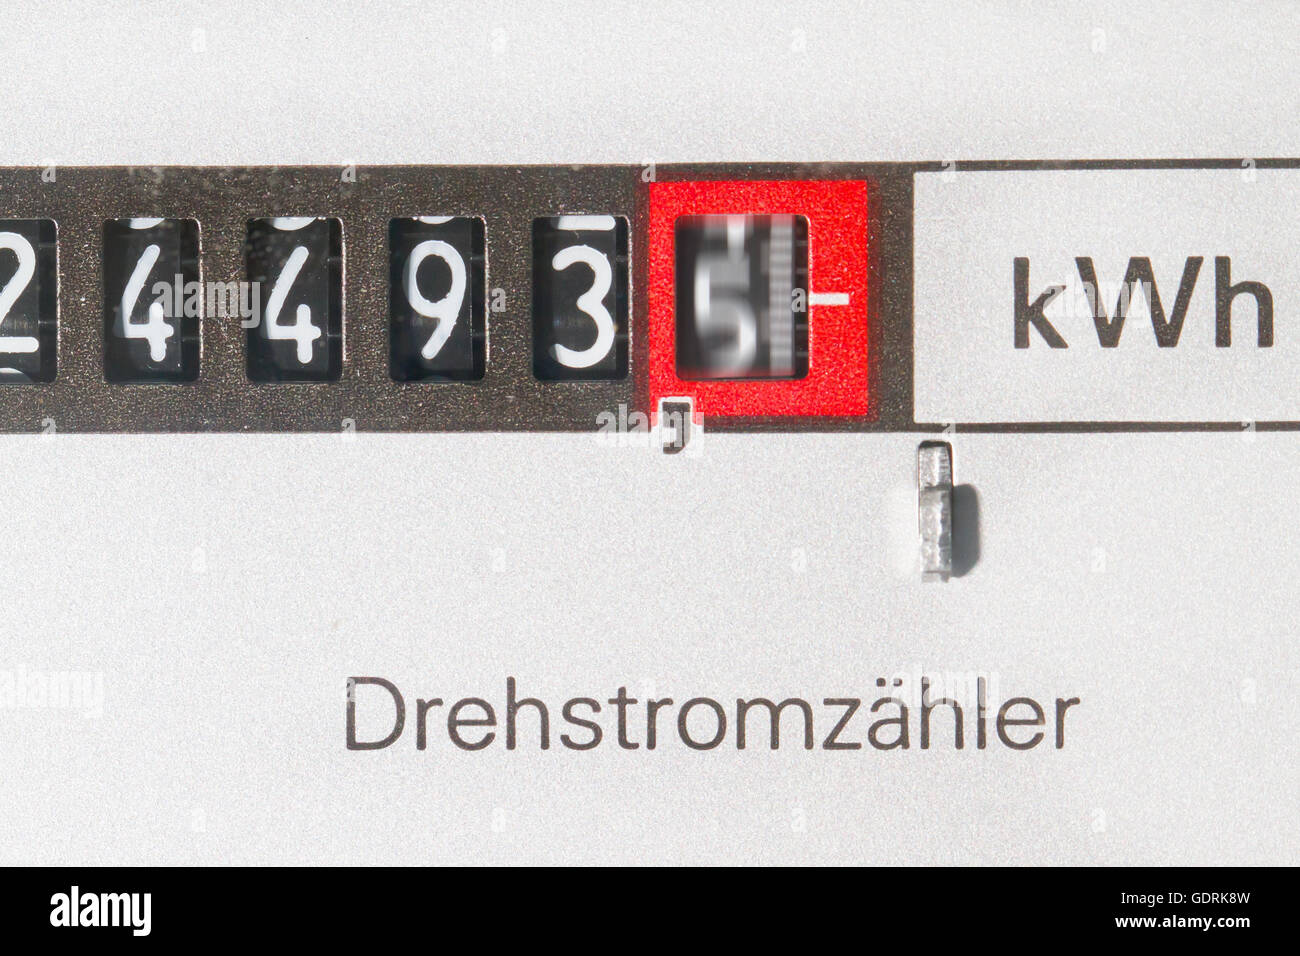 Electric meter in a house - Stock Image